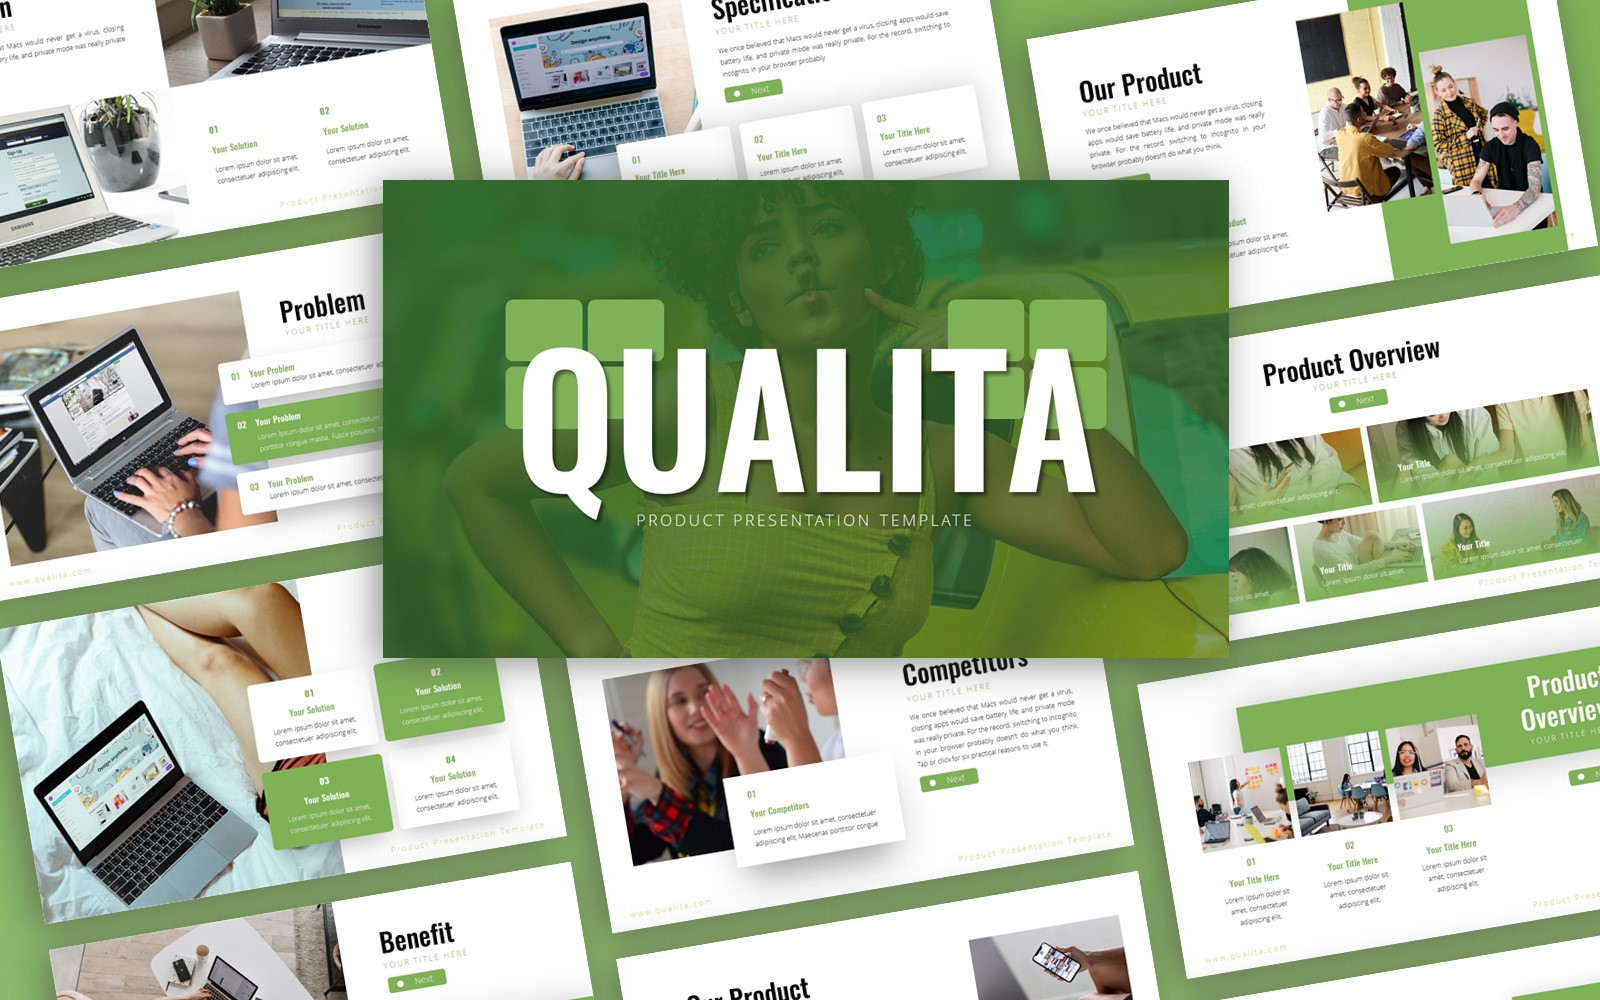 Qualita Product Presentation PowerPoint Template